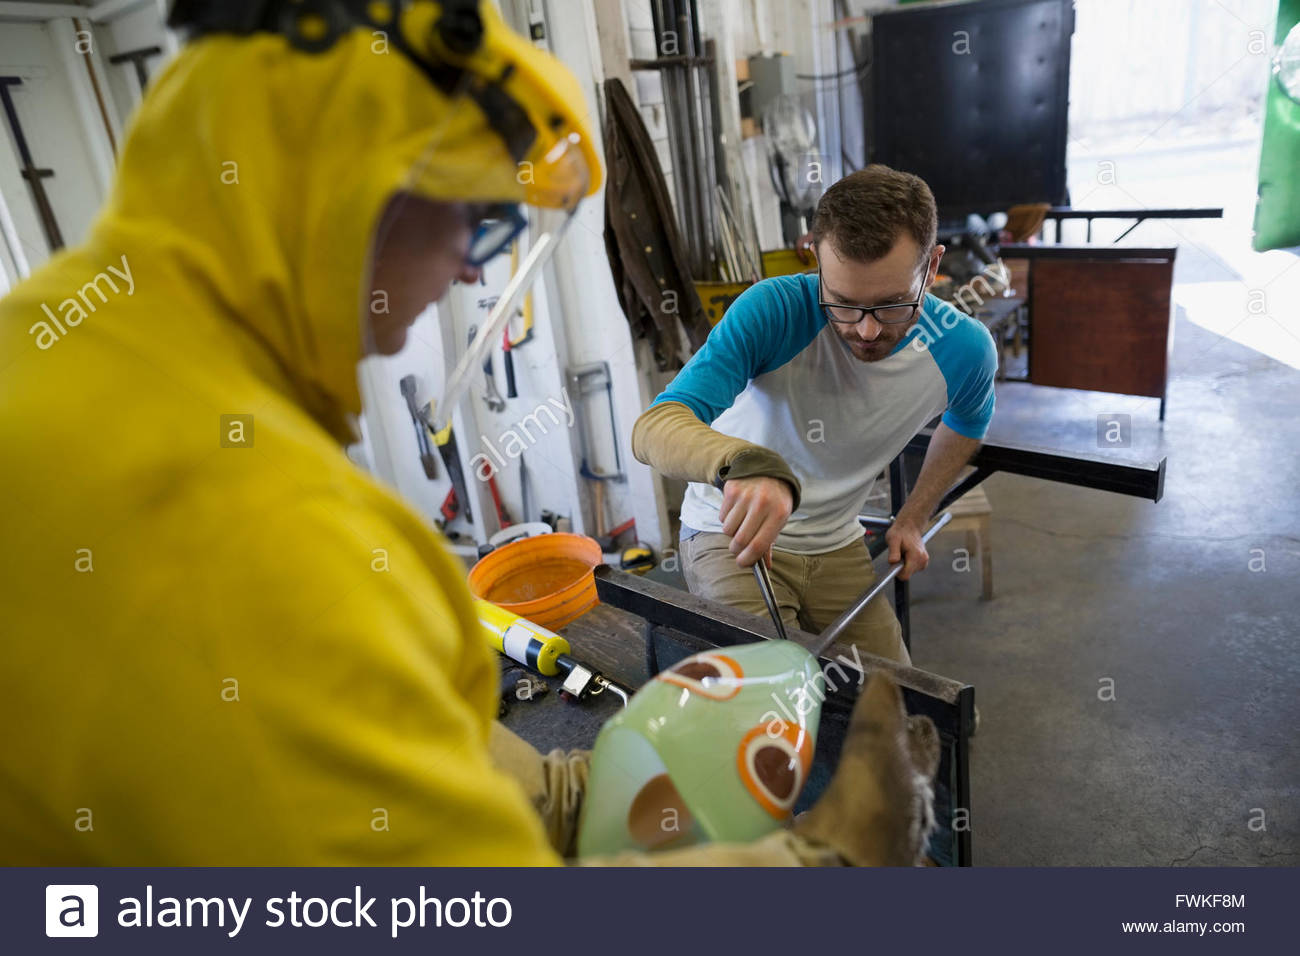 Glassblowers shaping glass in workshop - Stock Image